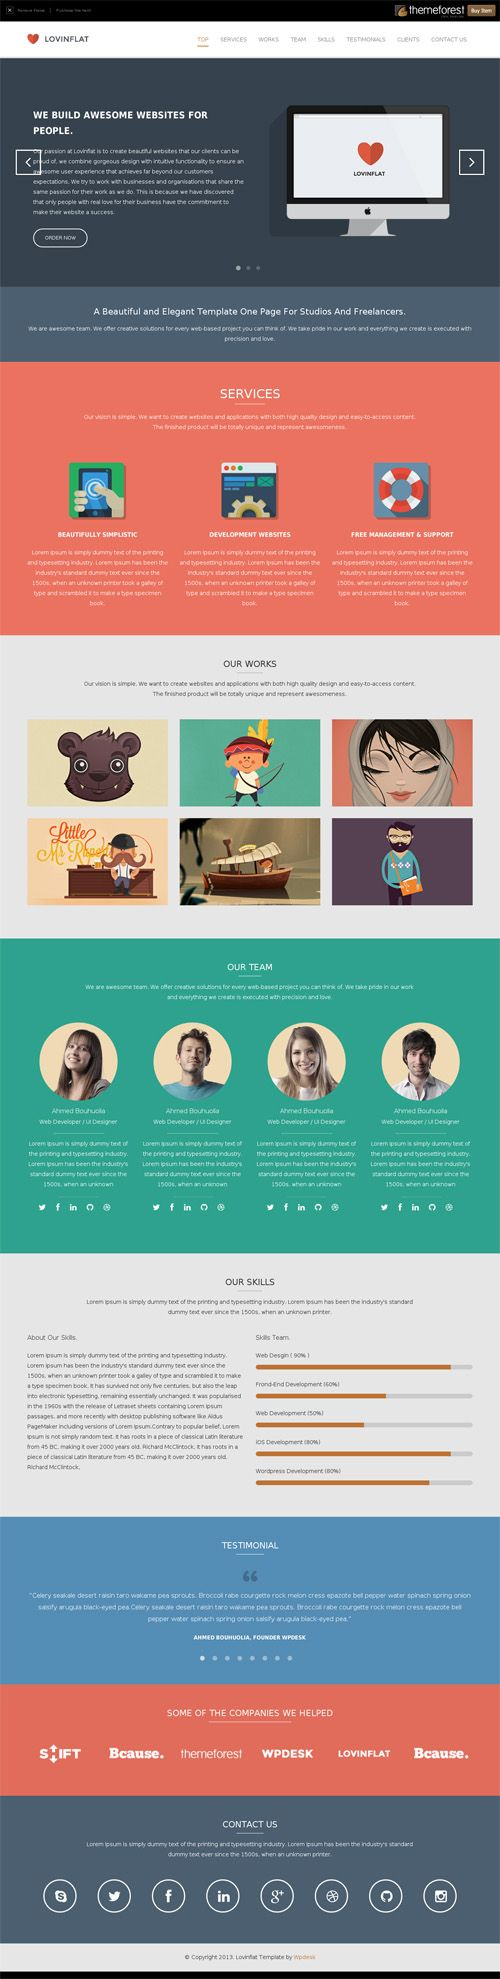 Lovinflat - One Page Bootstrap 3 Template | Webdesign | Pinterest